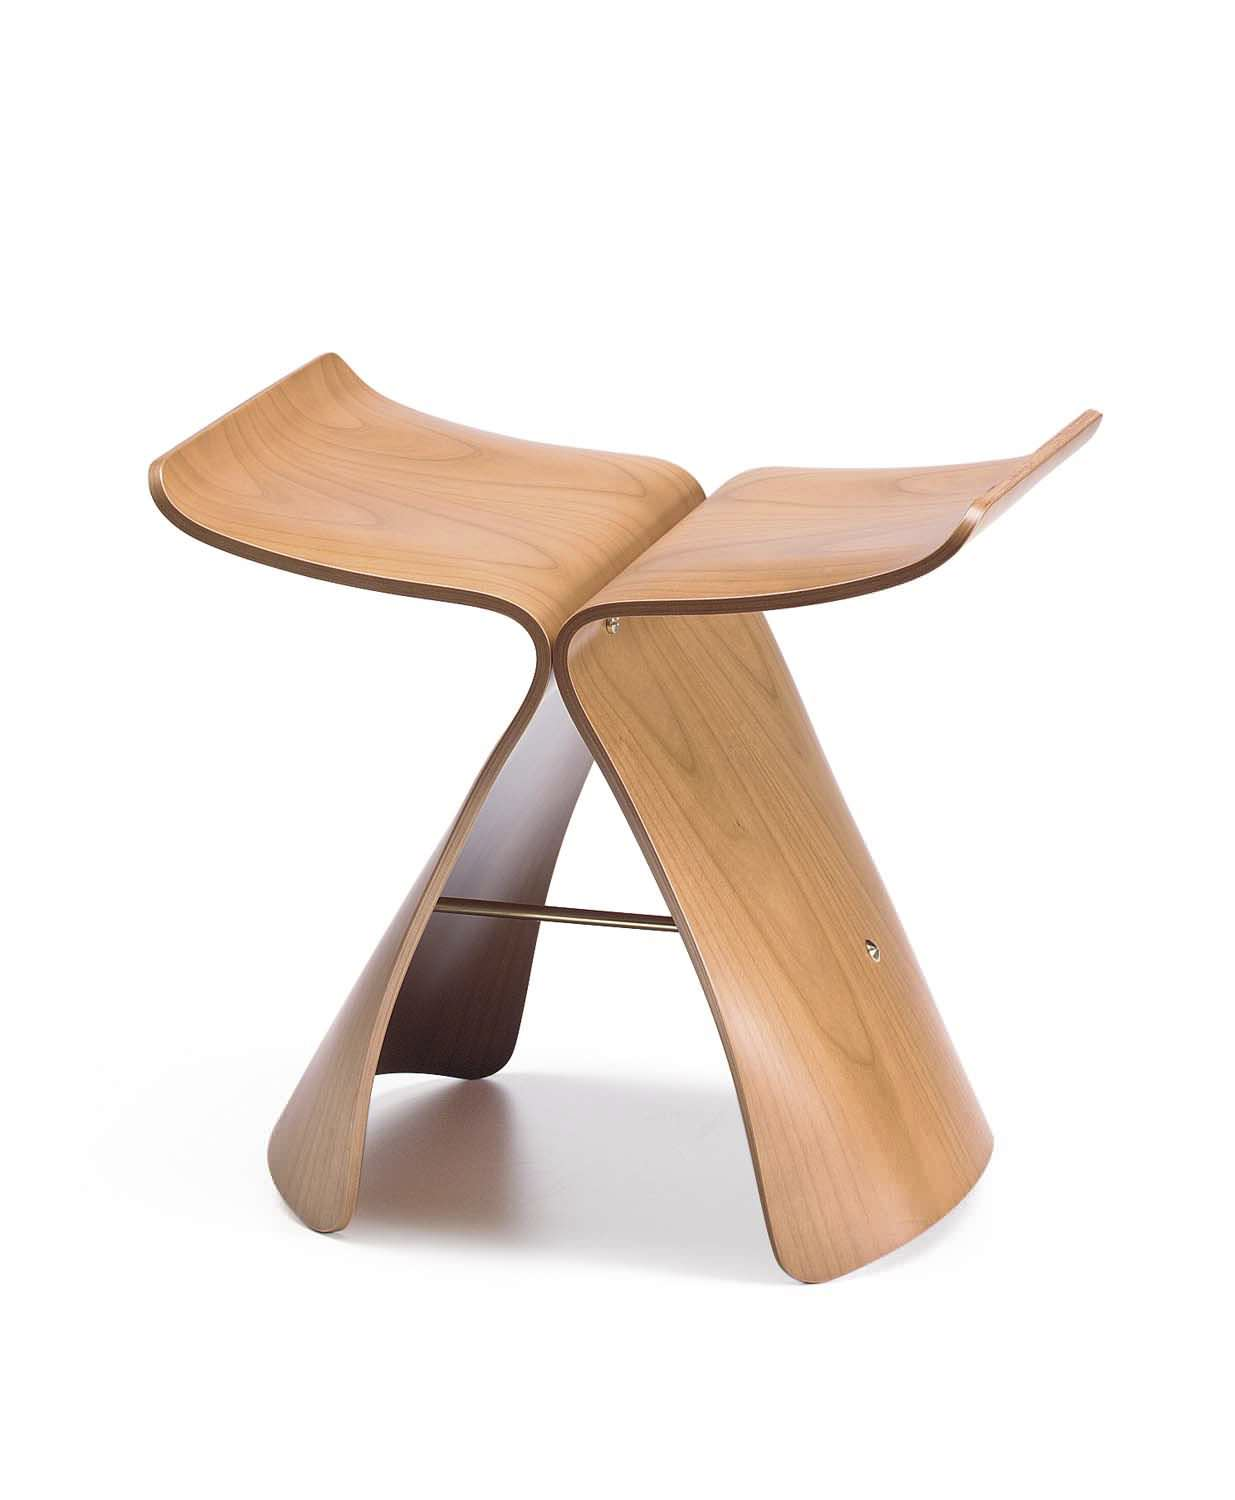 Butterfly chair sori yanagi -  Contemporary Stool Plywood By Sori Yanagi Butterfly Vitra